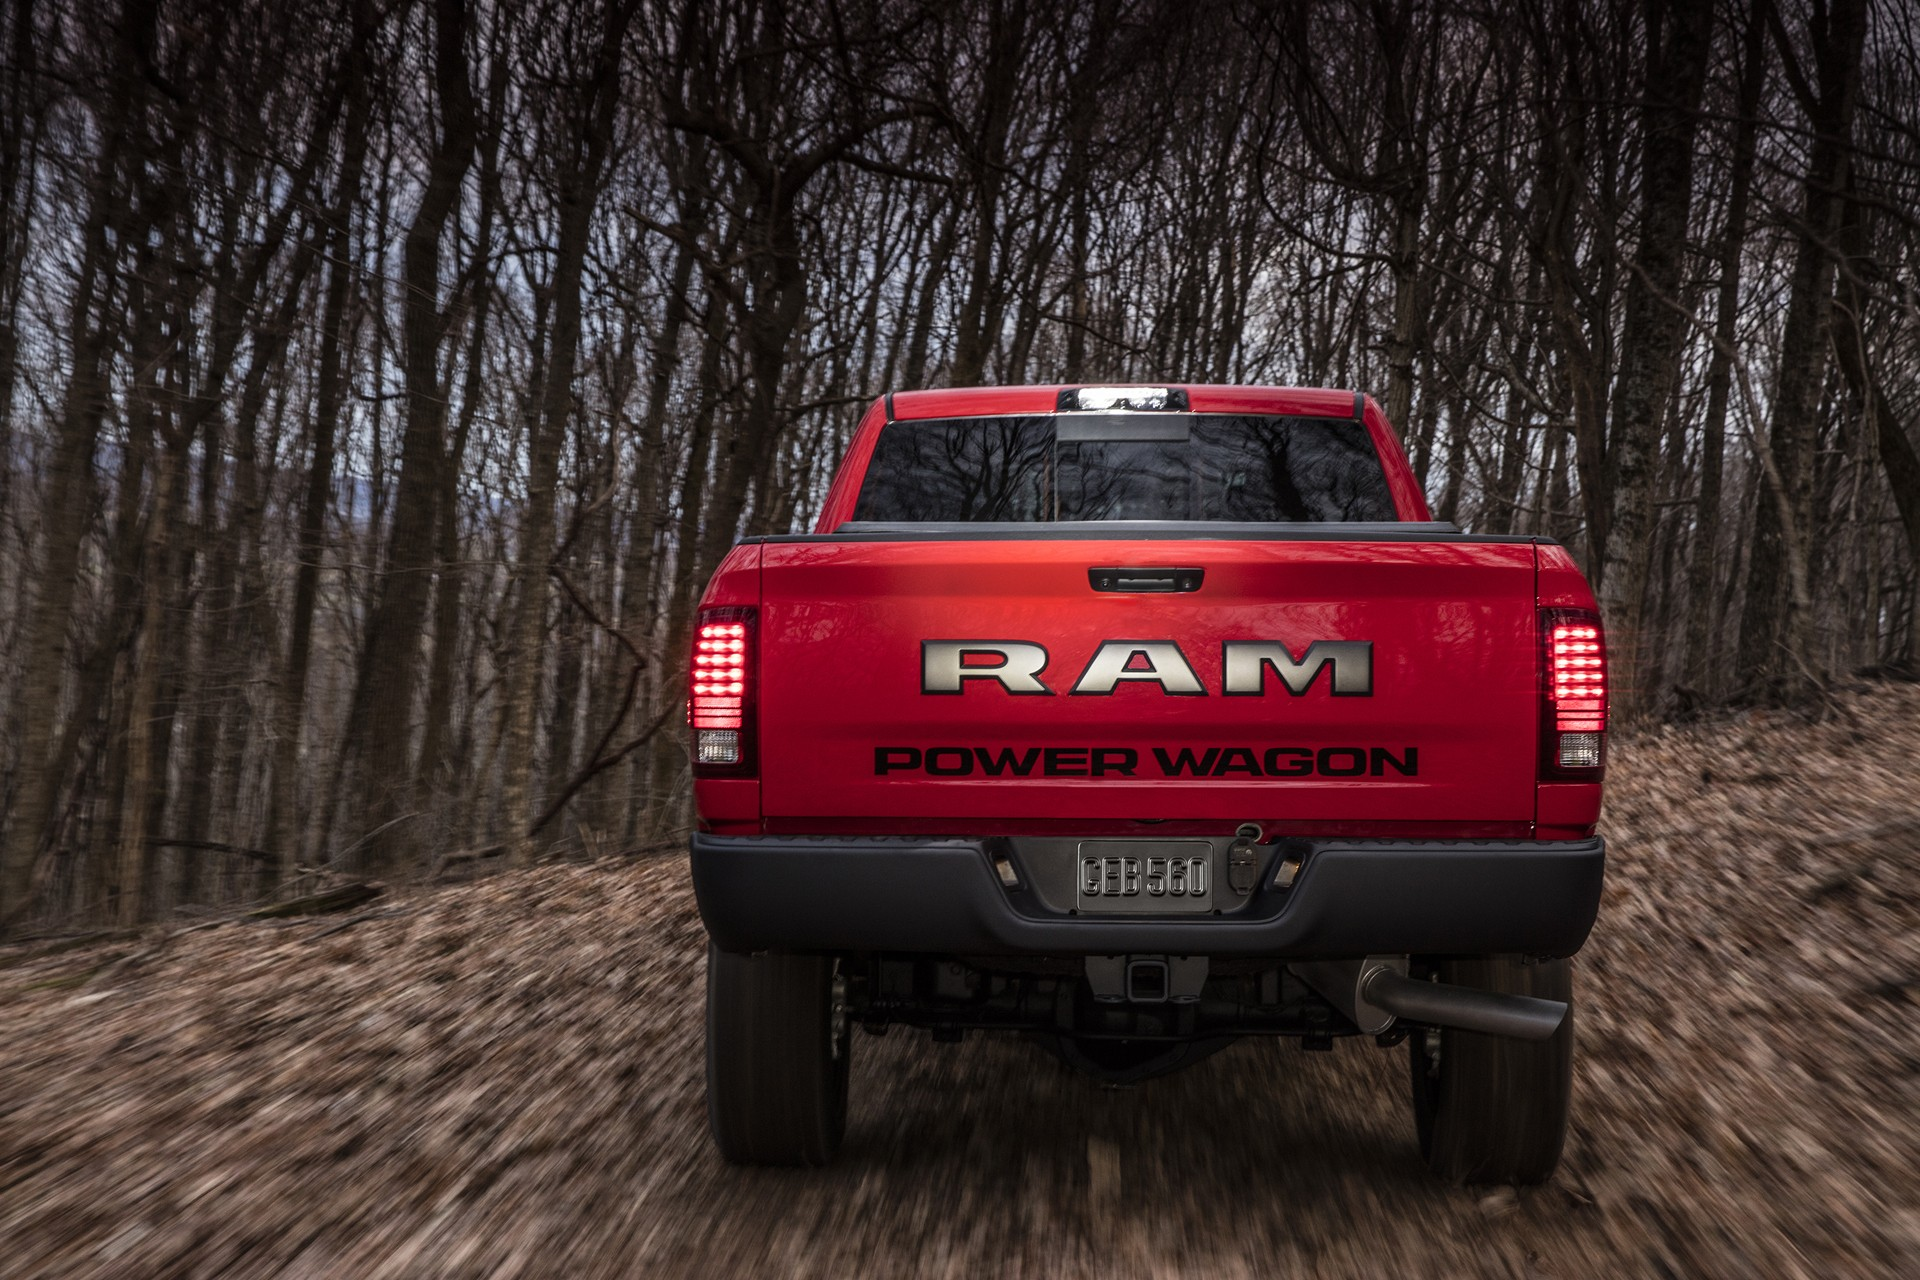 Ram Power Wagon Ditches Chrome Grille For Blacked Out Snout on 2020 Dodge Ram 2500